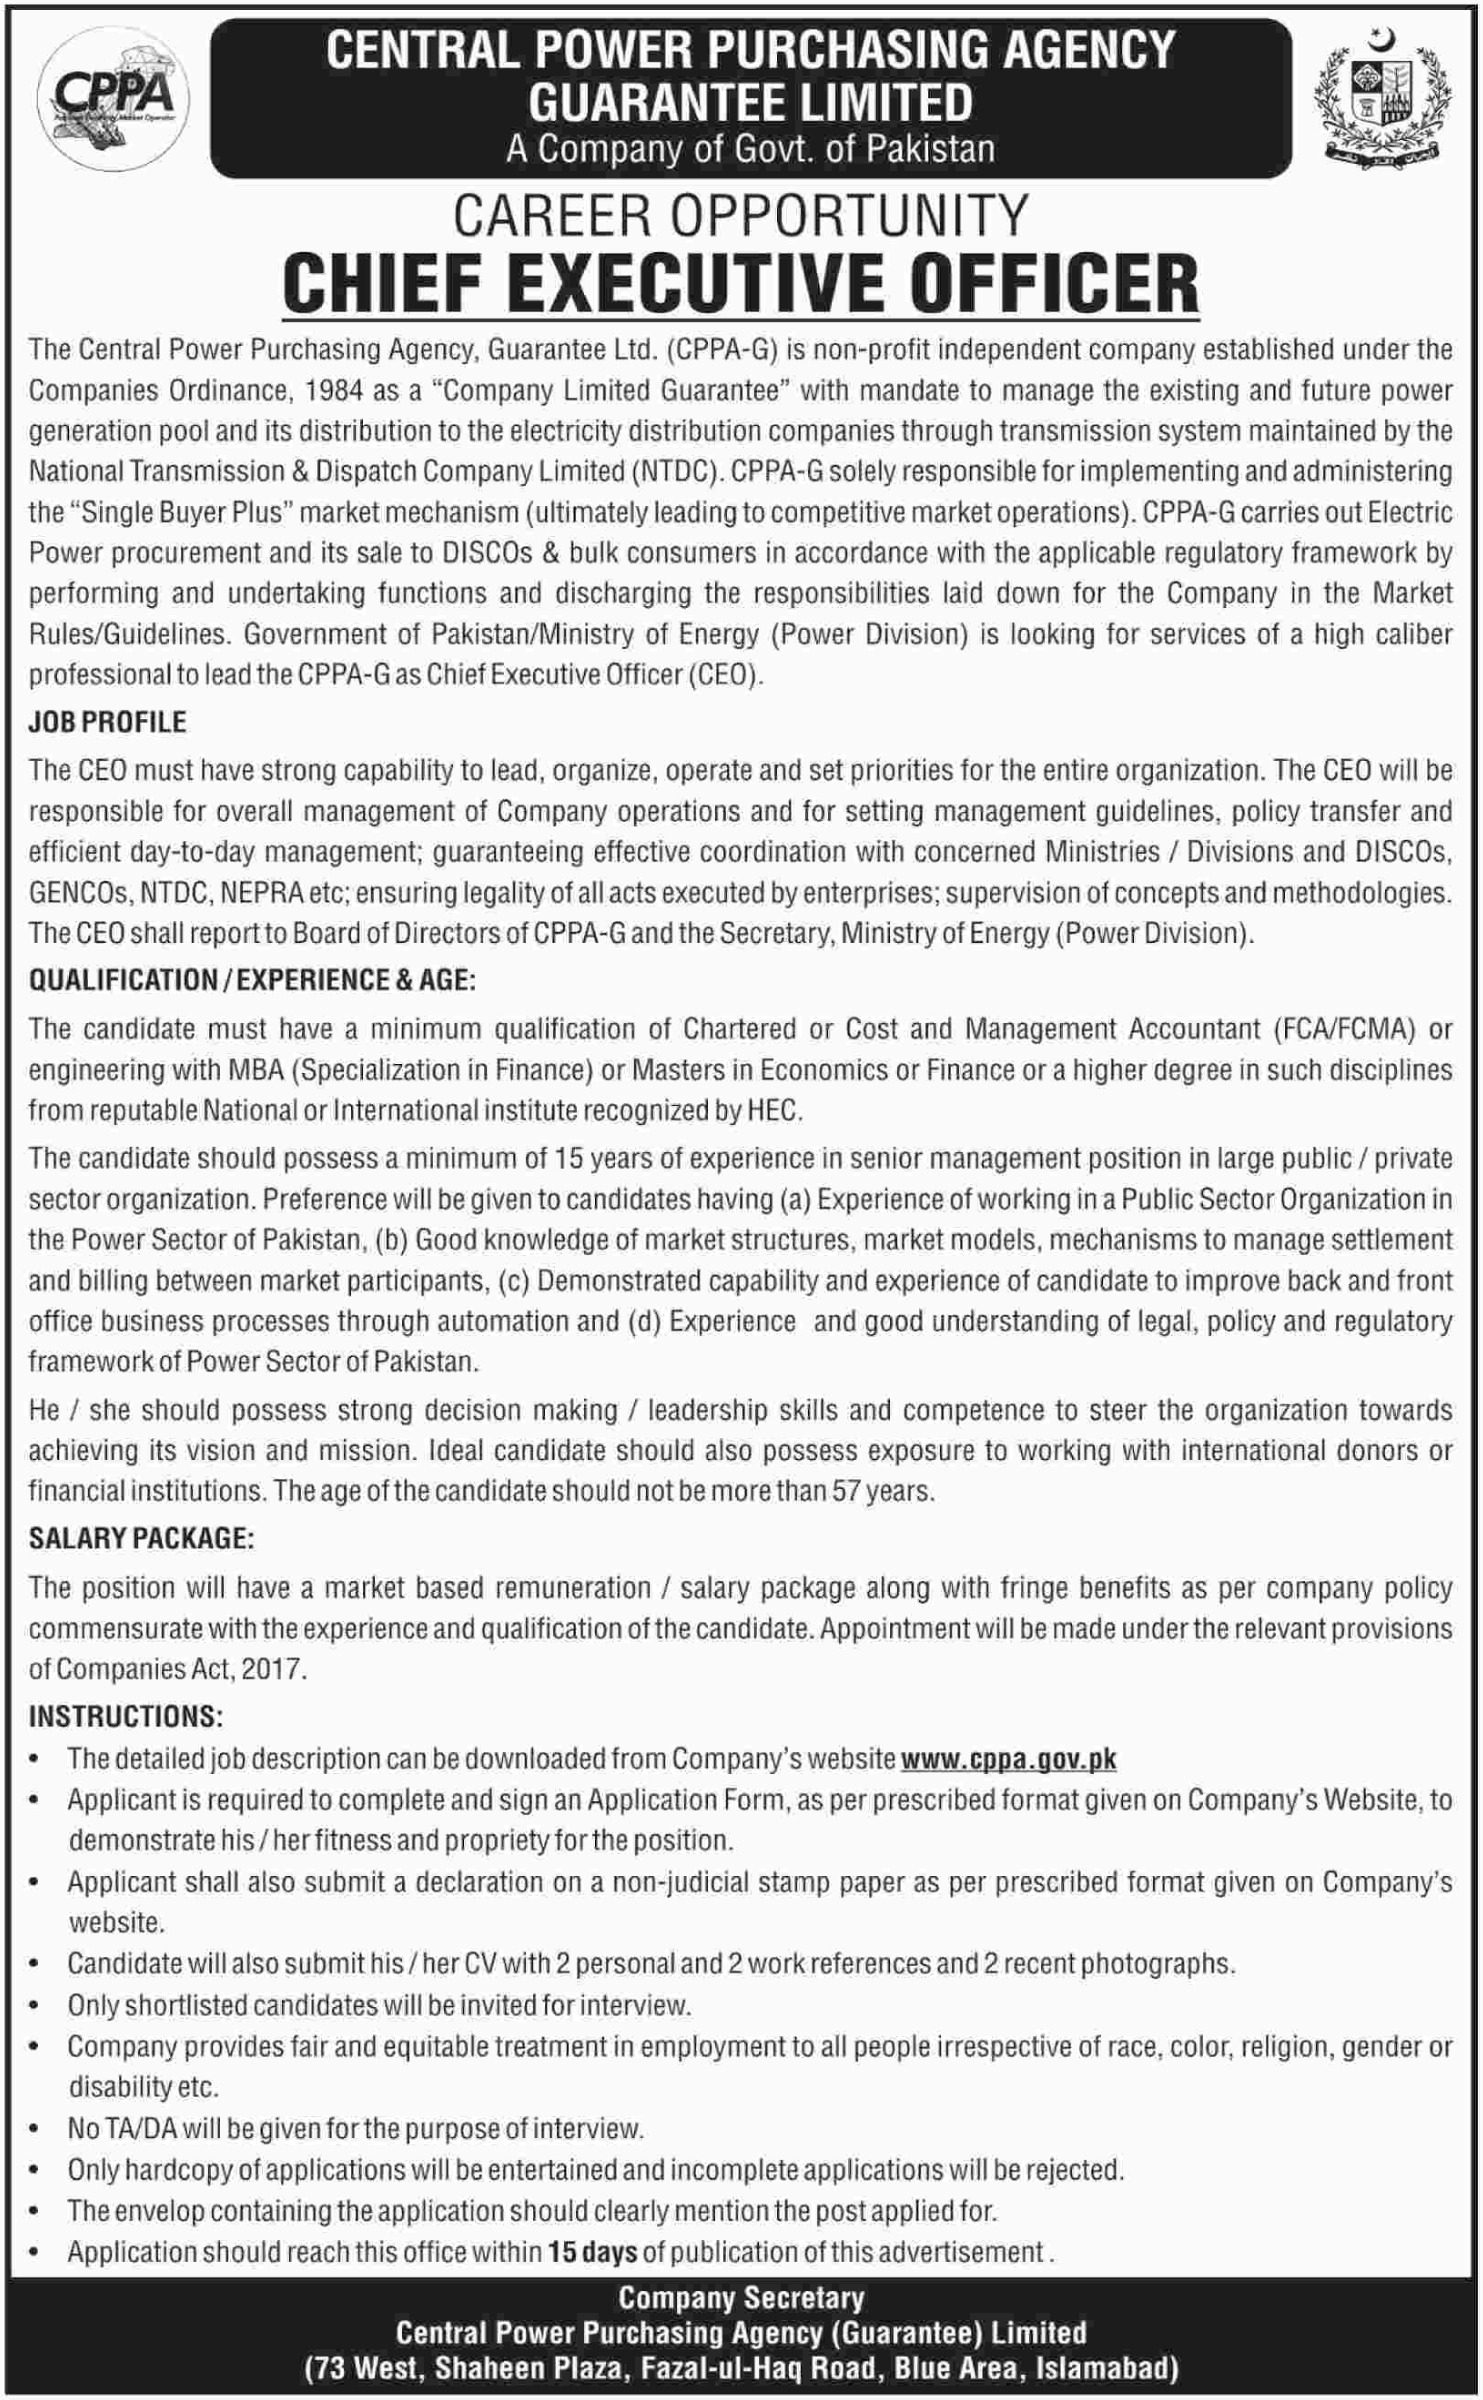 Central Power Purchasing Agency CPAA Jobs 2019